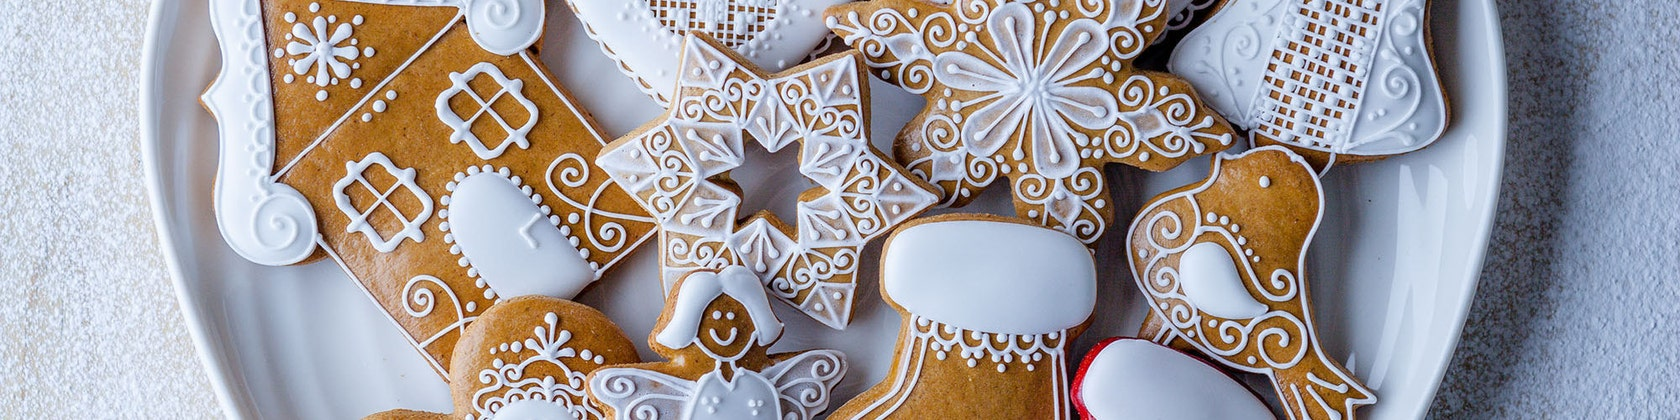 621d70c6b7a7 Artisan Iced Biscuits by SilviasGingerbread on Etsy